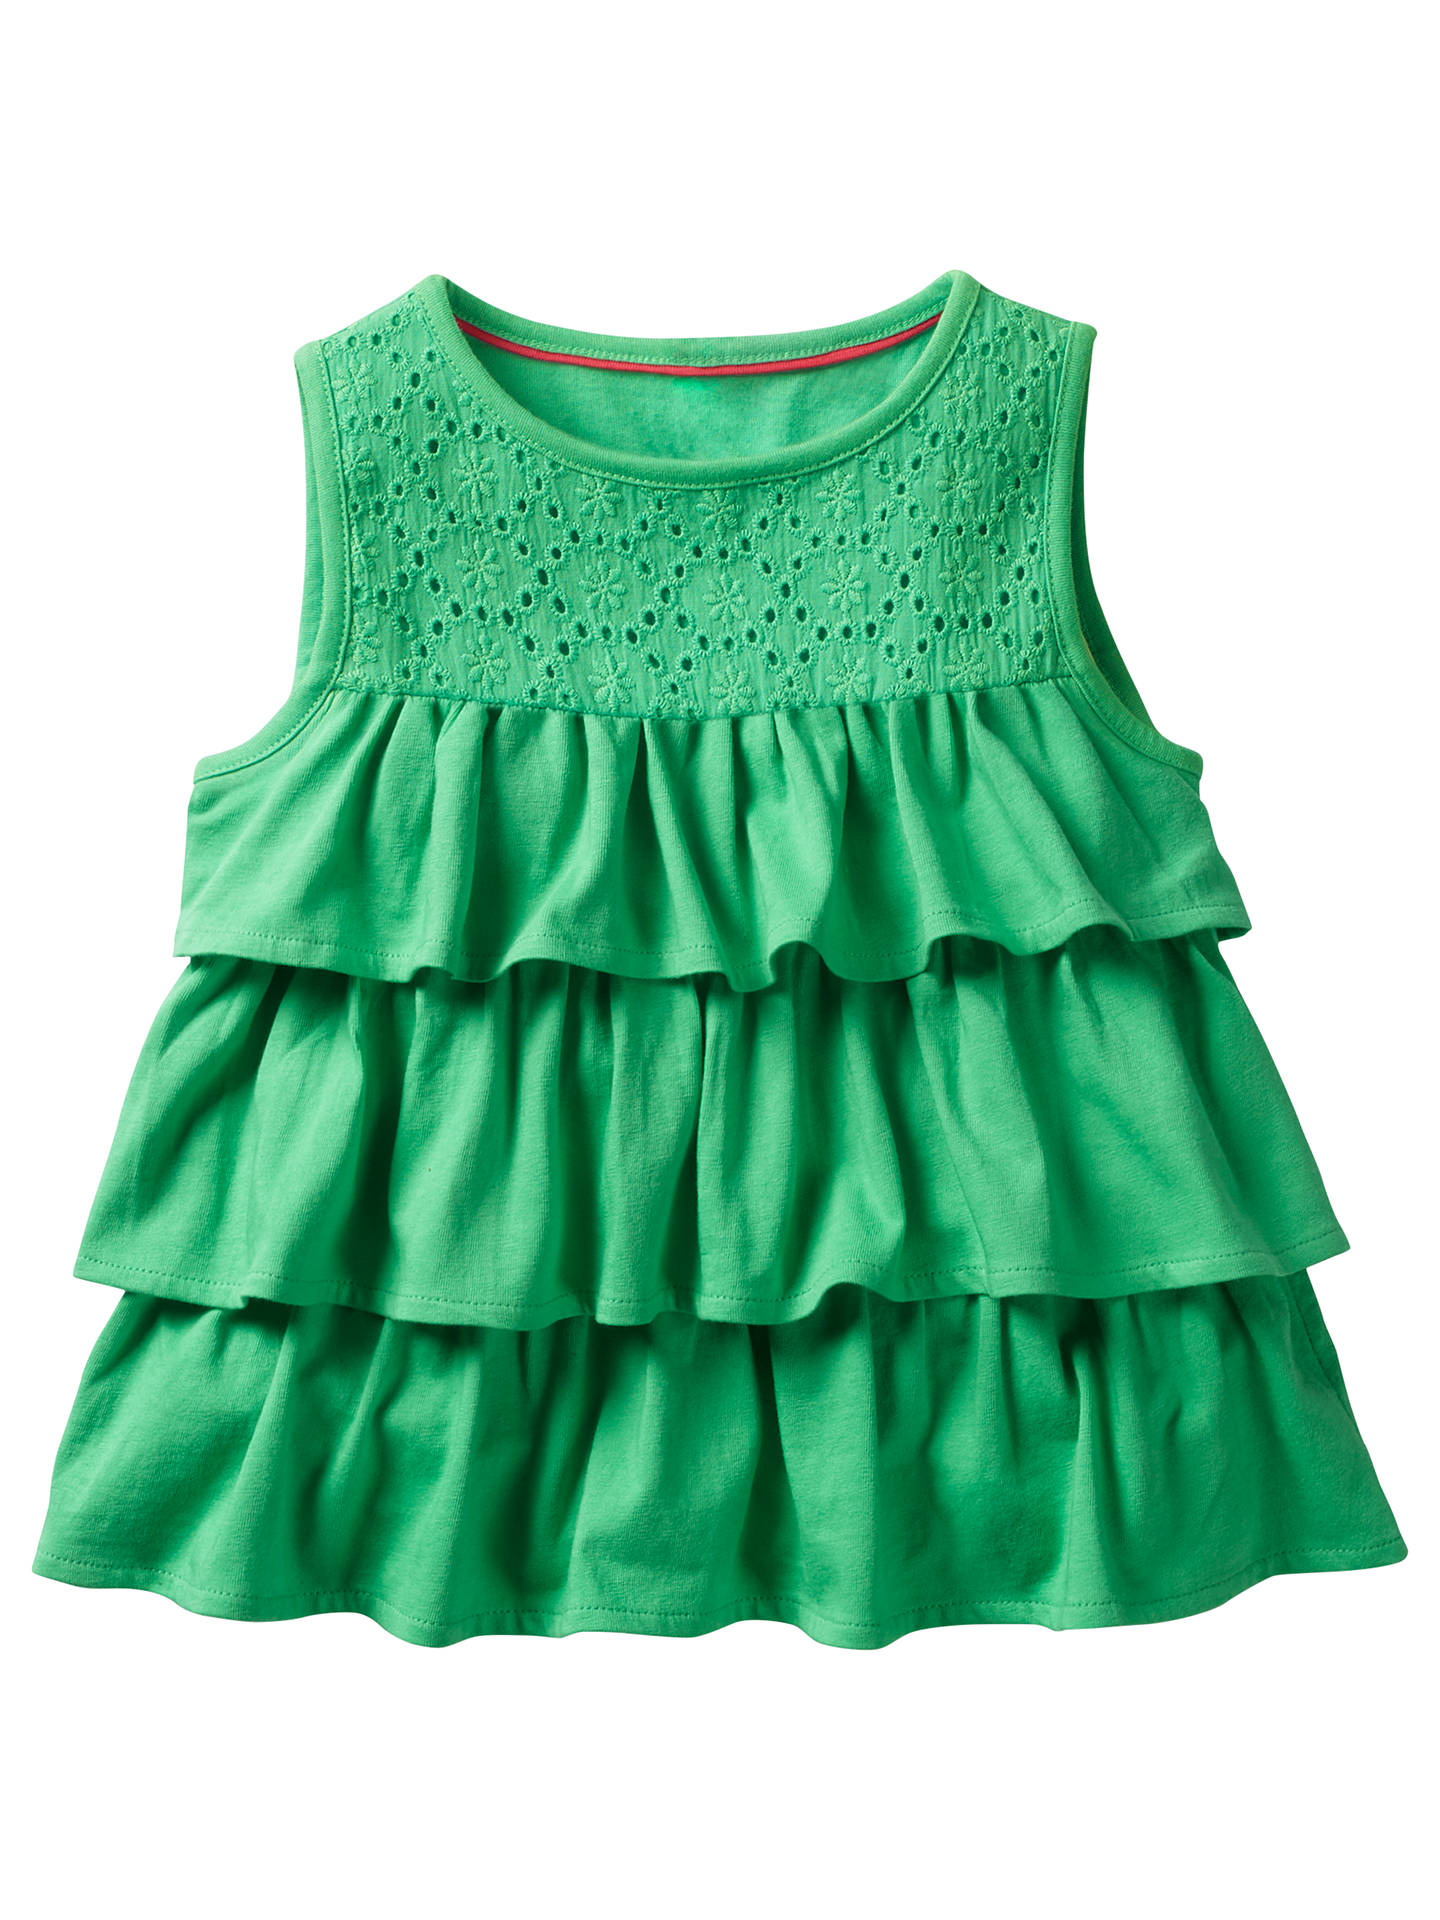 9b7ad26d4744fe Buy Mini Boden Girls' Ruffle Top, Green, 2-3 years Online at